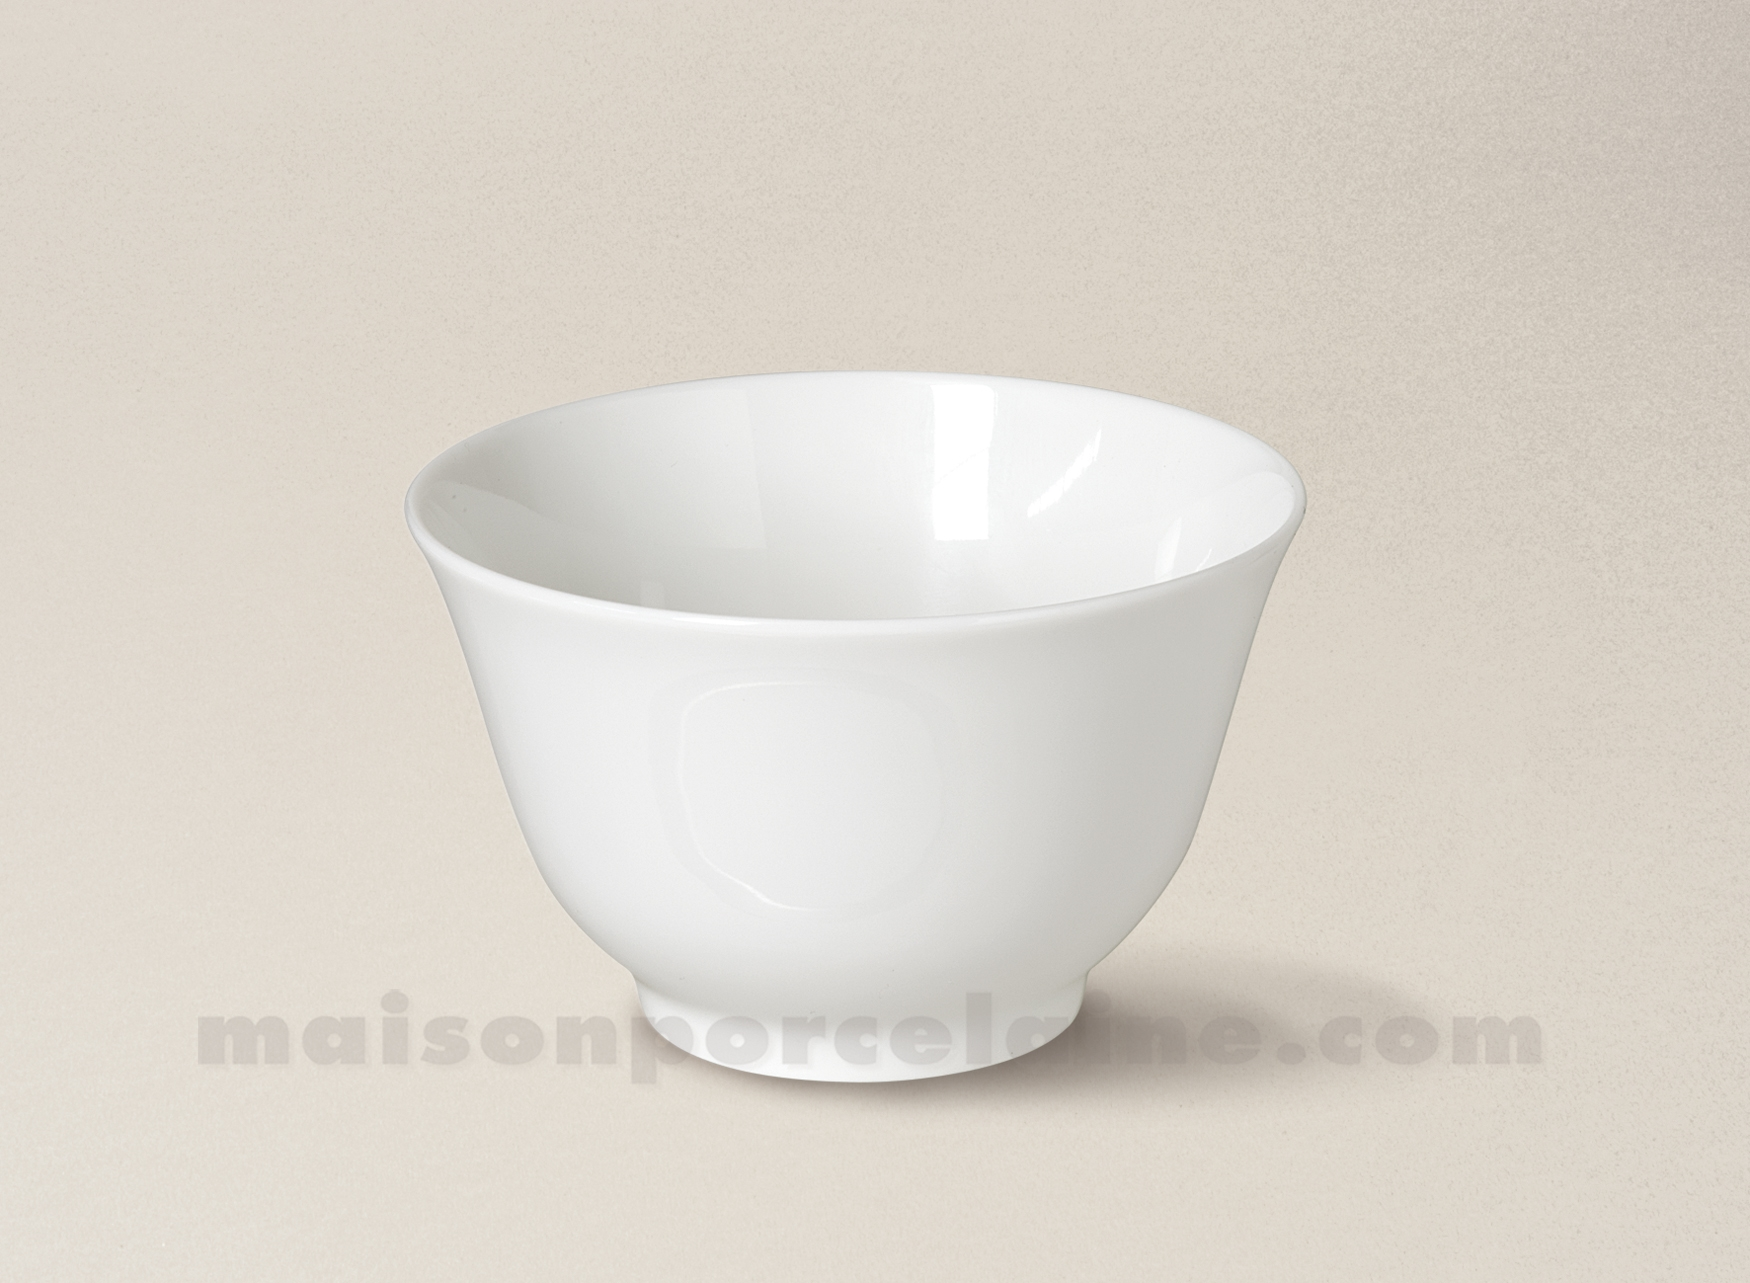 Bol the porcelaine blanche limoges evase orient gm 10x6 5 for Maison de la porcelaine